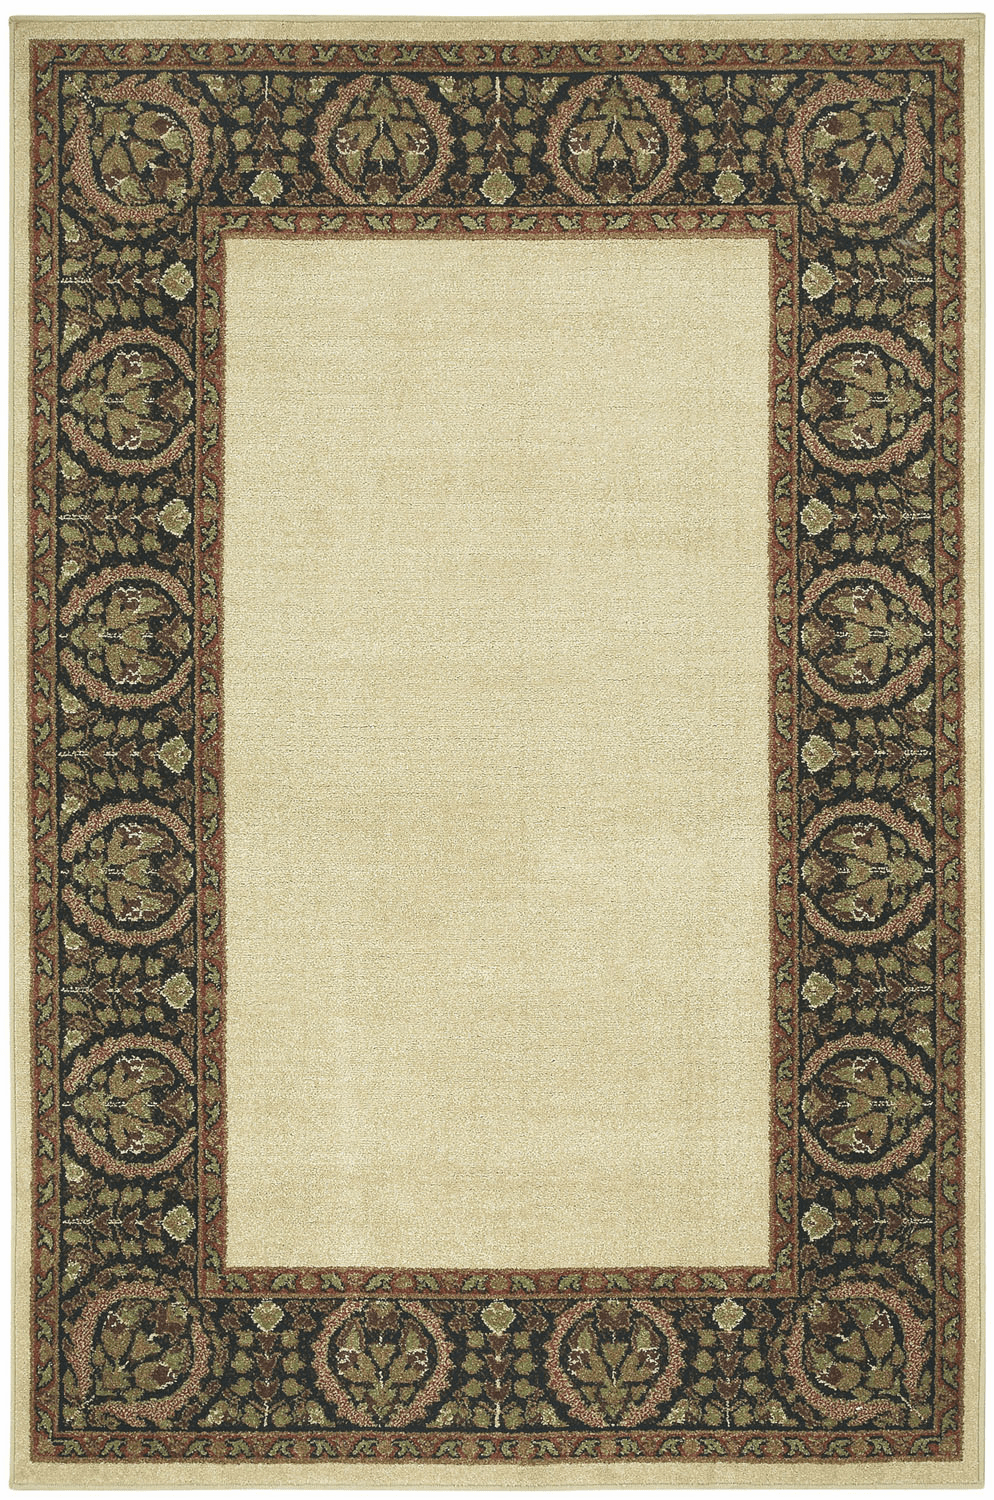 Machine Woven Candlelight Rug